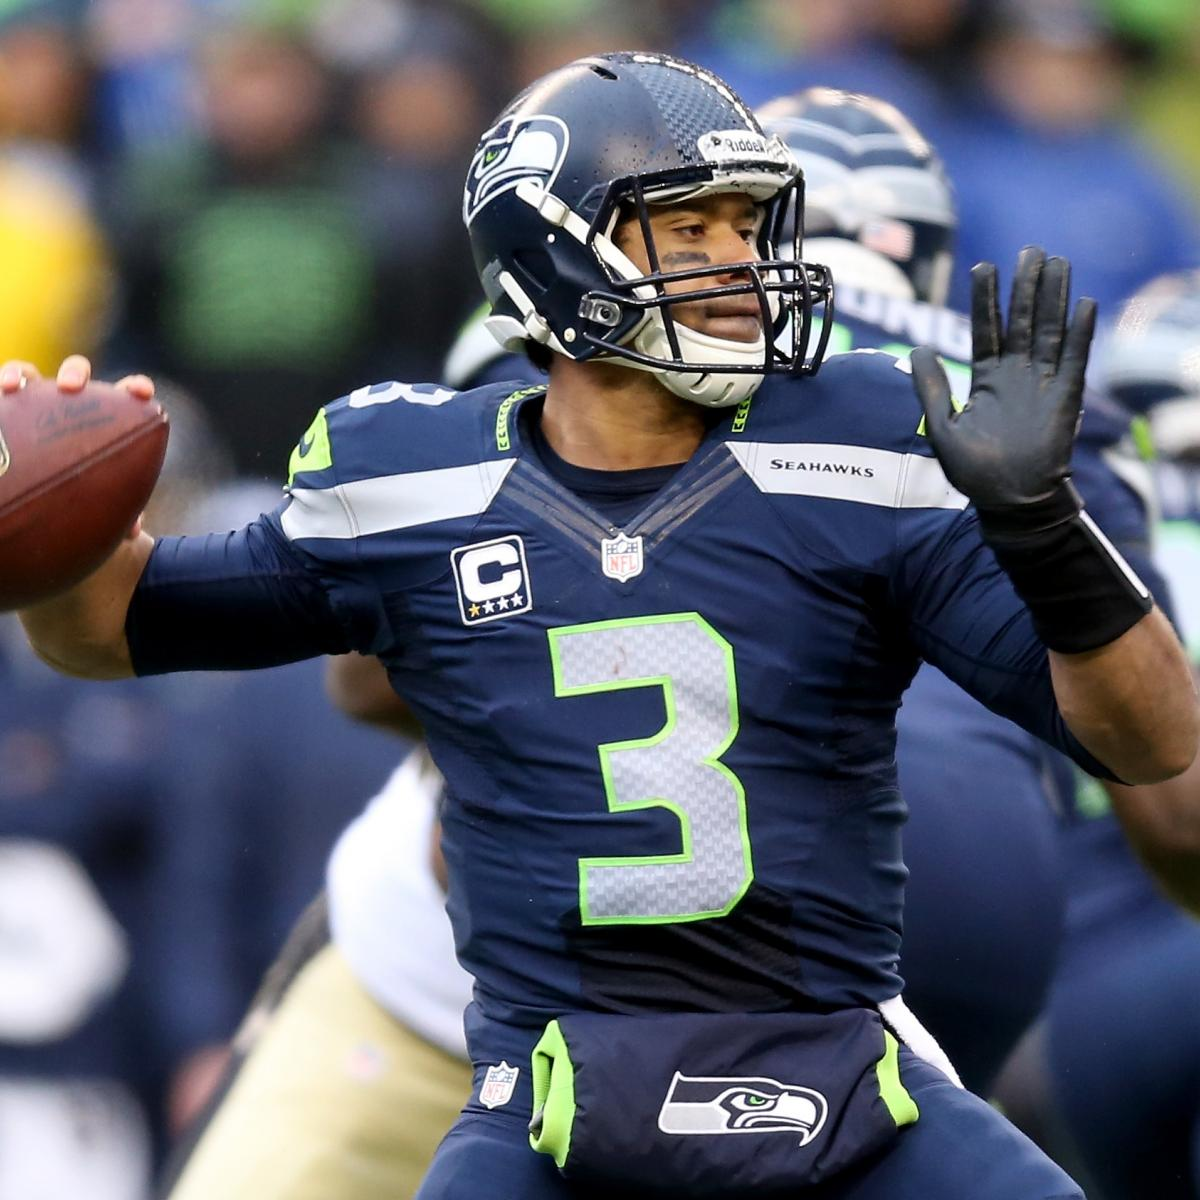 Seattle Seahawks Schedule: 49ers Vs. Seahawks: Complete Guide And Prediction For NFC